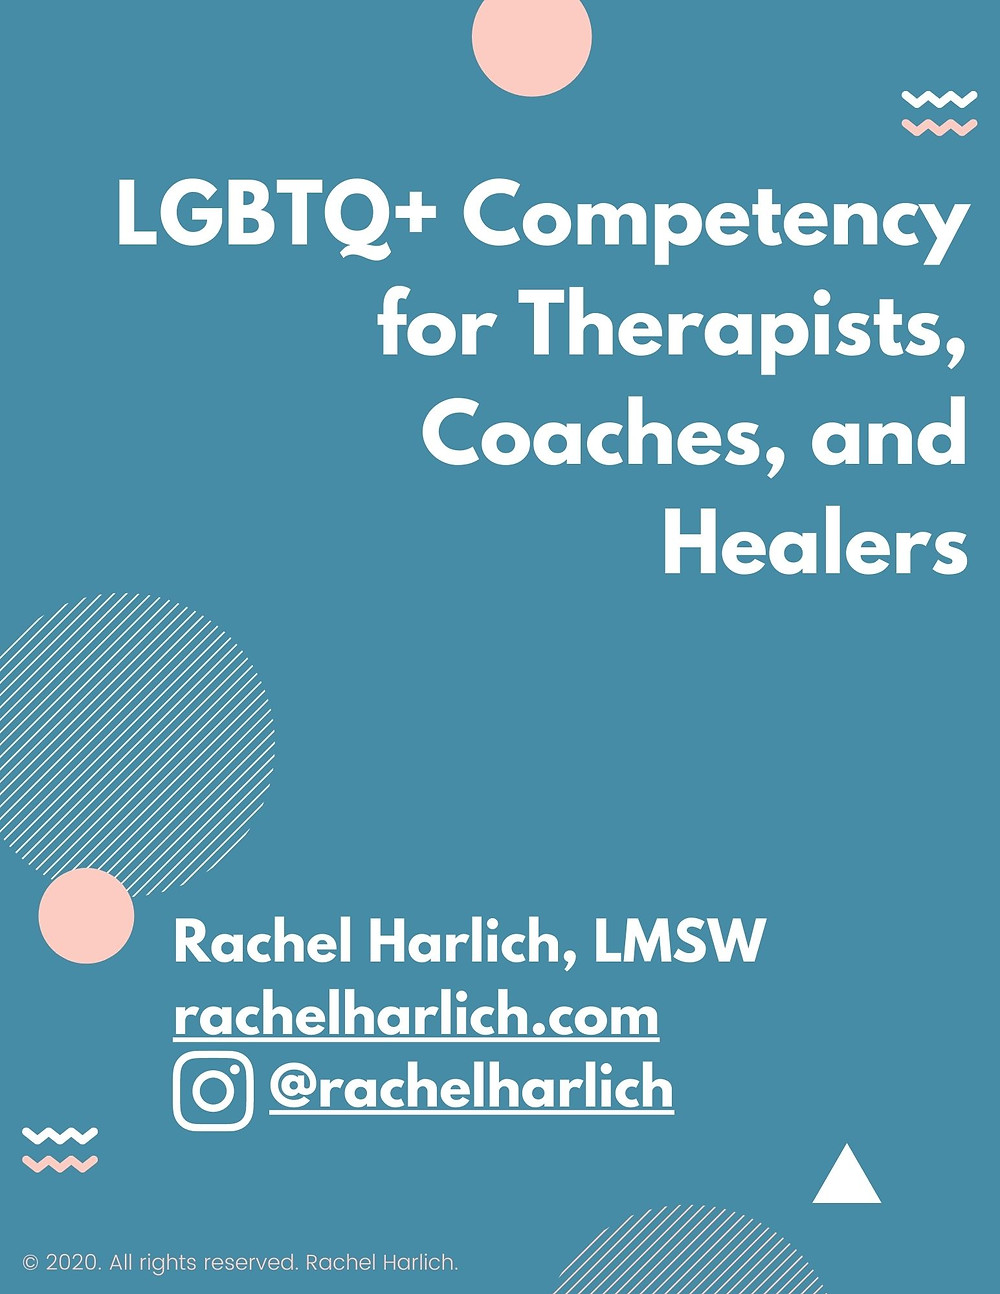 LGBTQ+ LGBT Competency for Therapists, Non-profits, Service Providers, Social Workers, Coaches, Healers Webinar Training Workshop Booklet Trainer Speaker